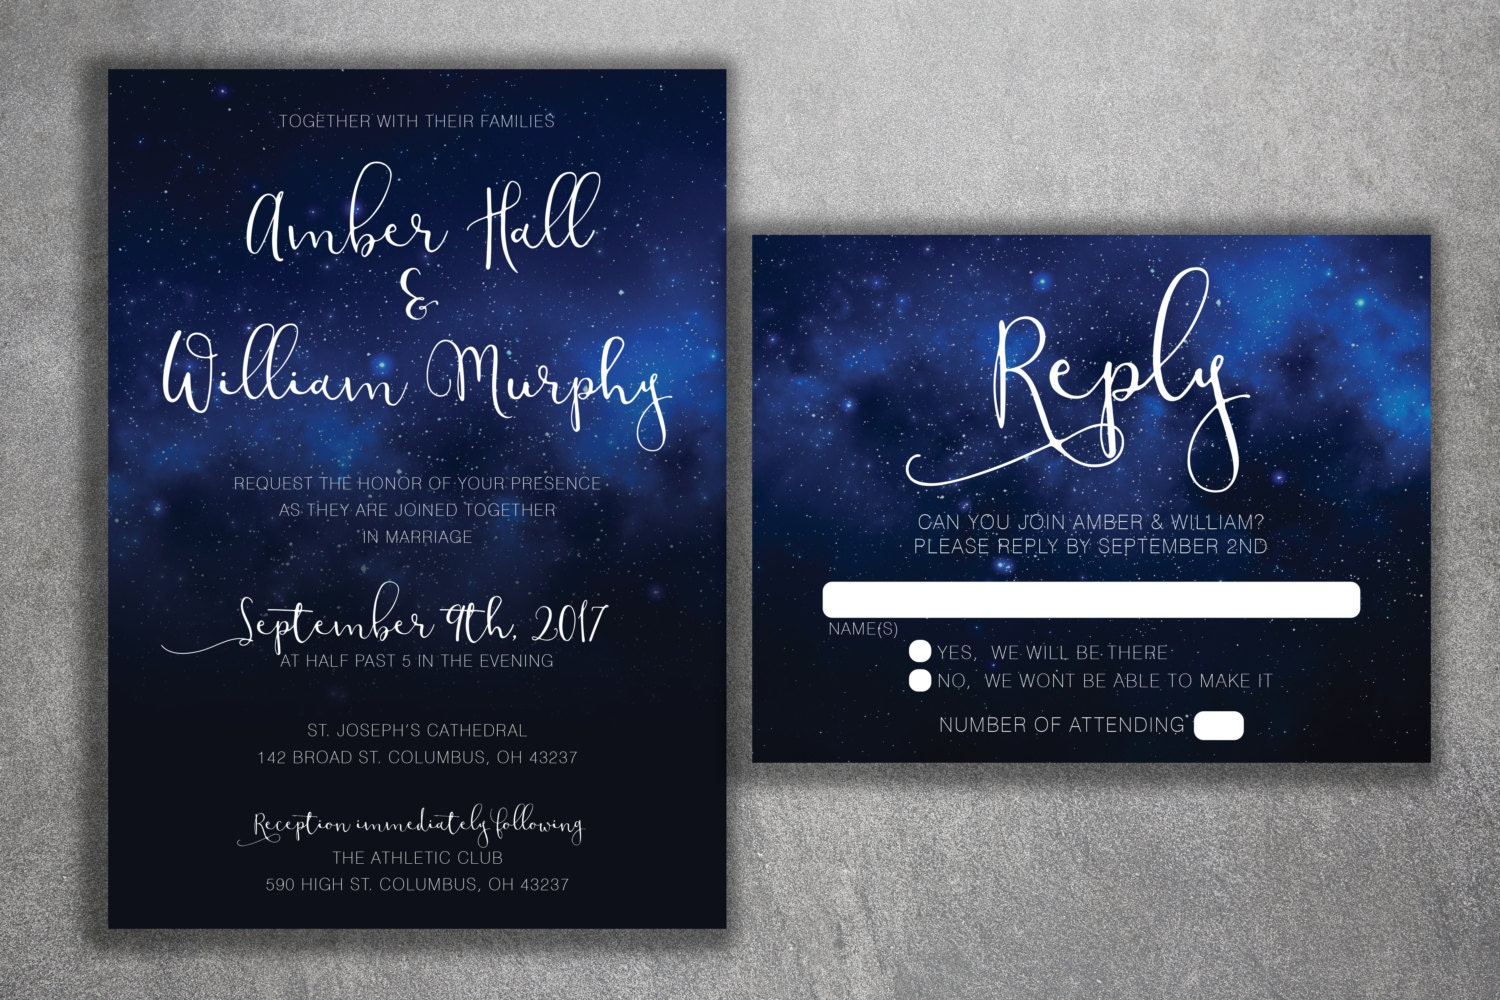 Stars Wedding Invitations Set Printed   Starry Night, Classy, Sky Wedding  Invitations, Stars, Summer, Blue And White, Elegant, Dream,